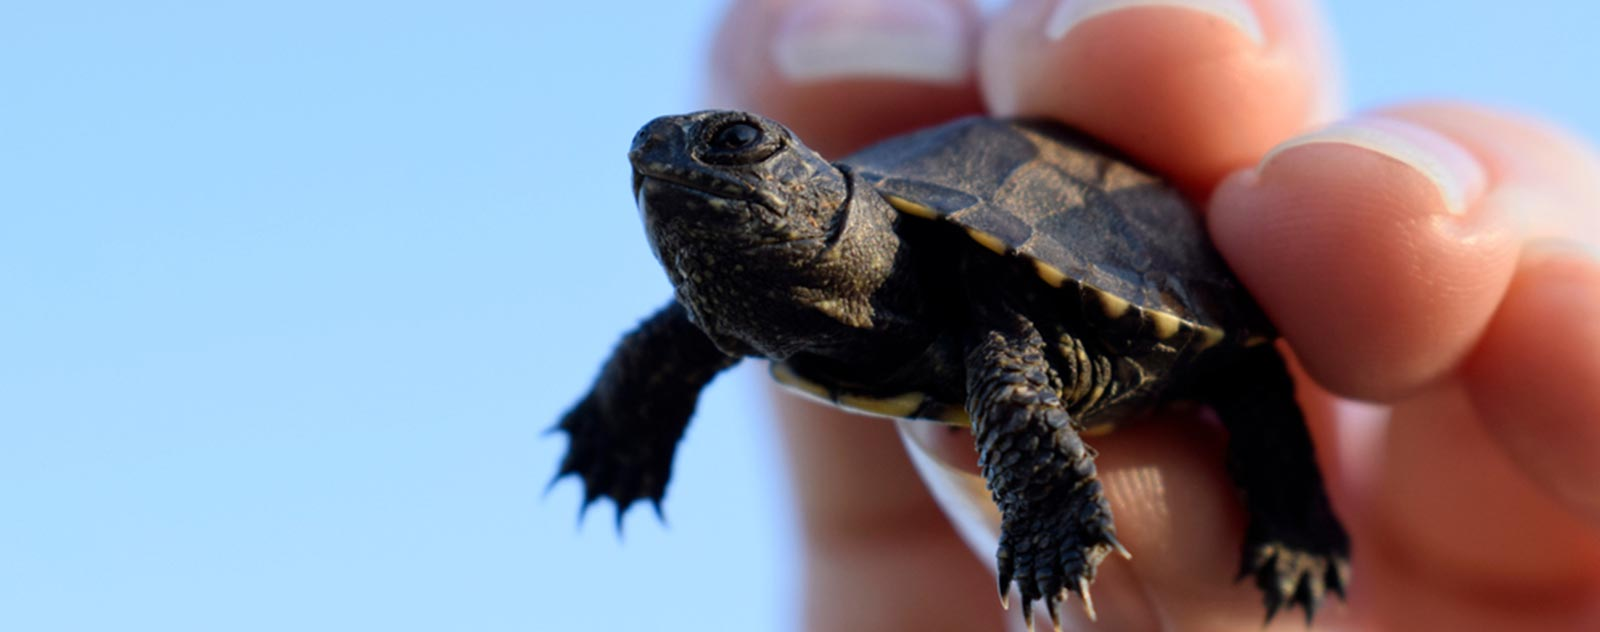 tortue-d-eau-carence-alimentaire